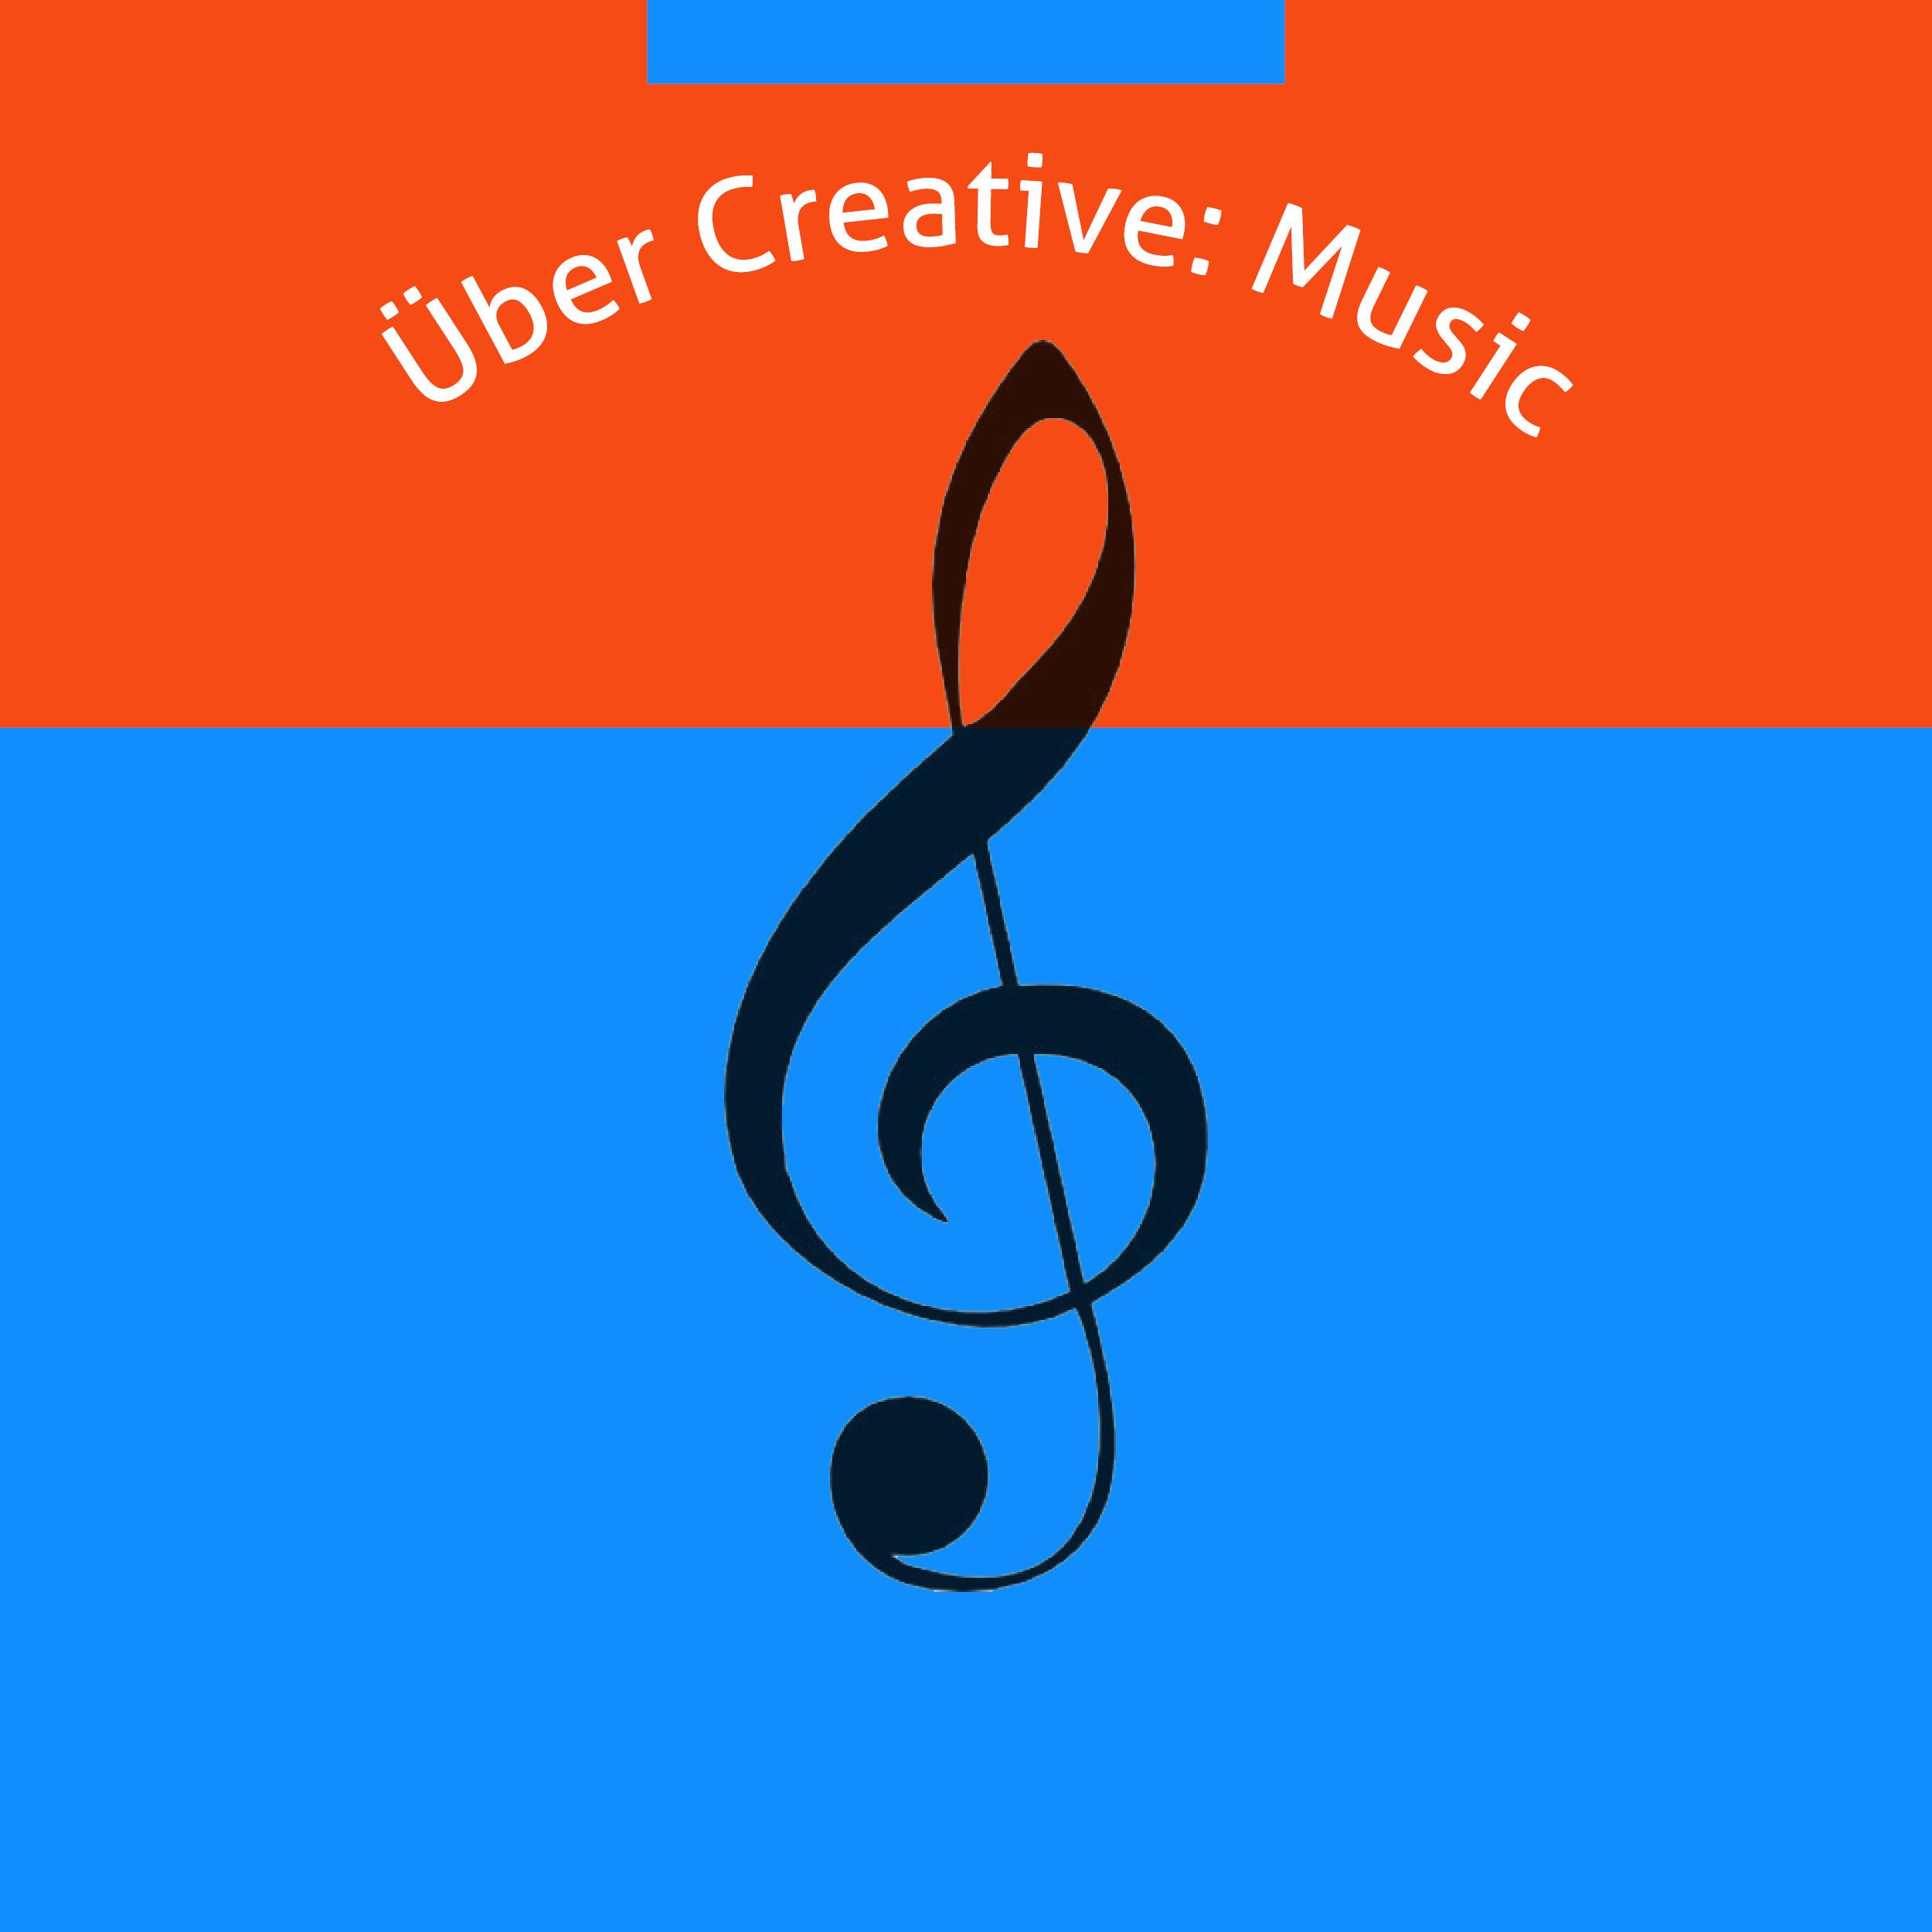 Über Creative: Preschool Music